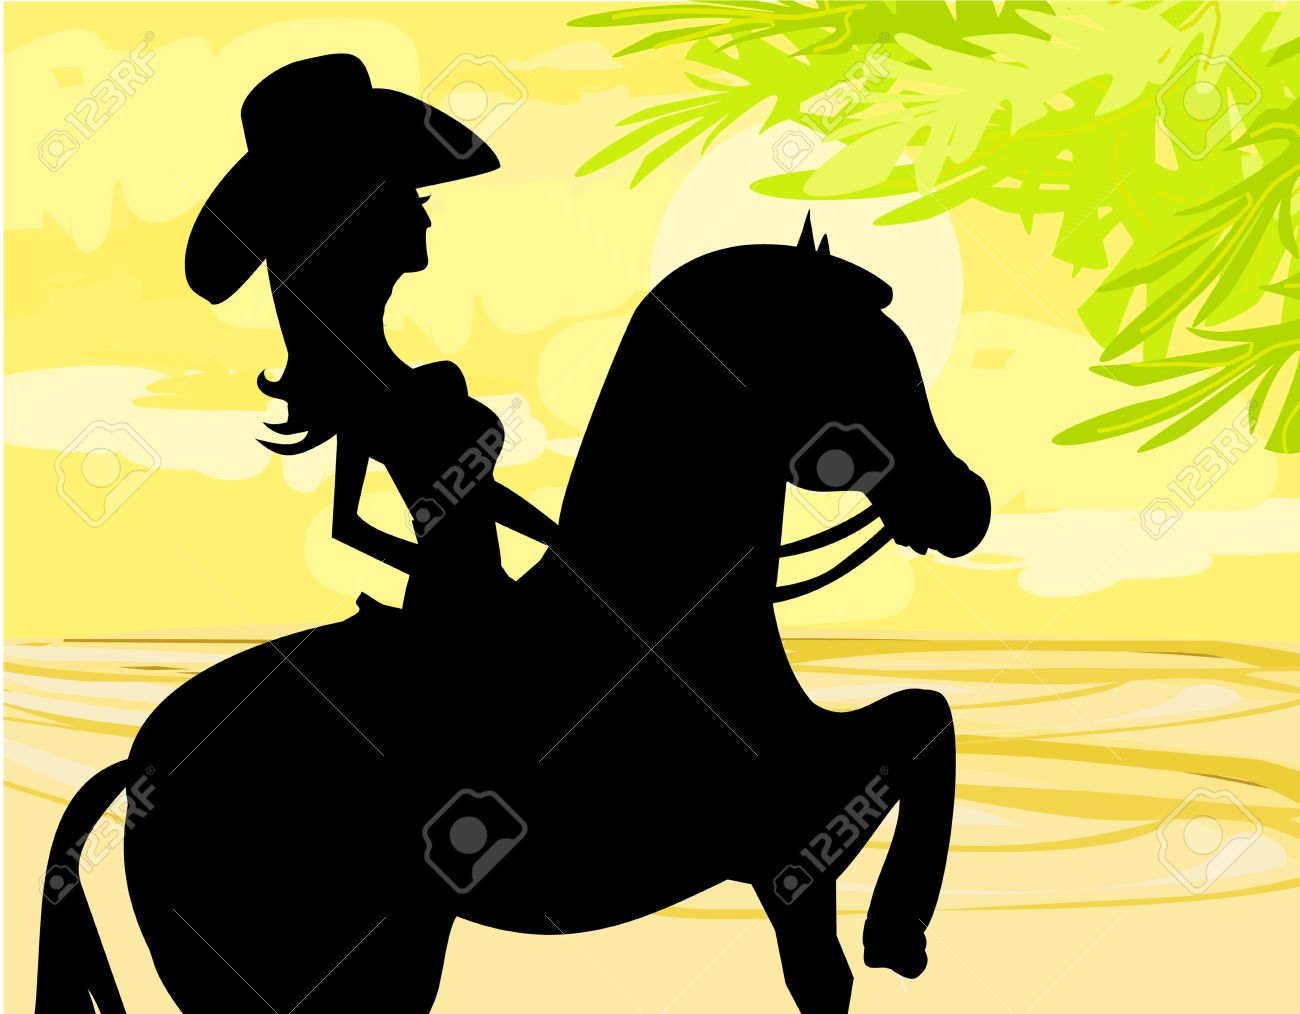 Silhouette Of Cowgirl And Horse Royalty Free Cliparts Vectors And Stock Illustration Image 17468133